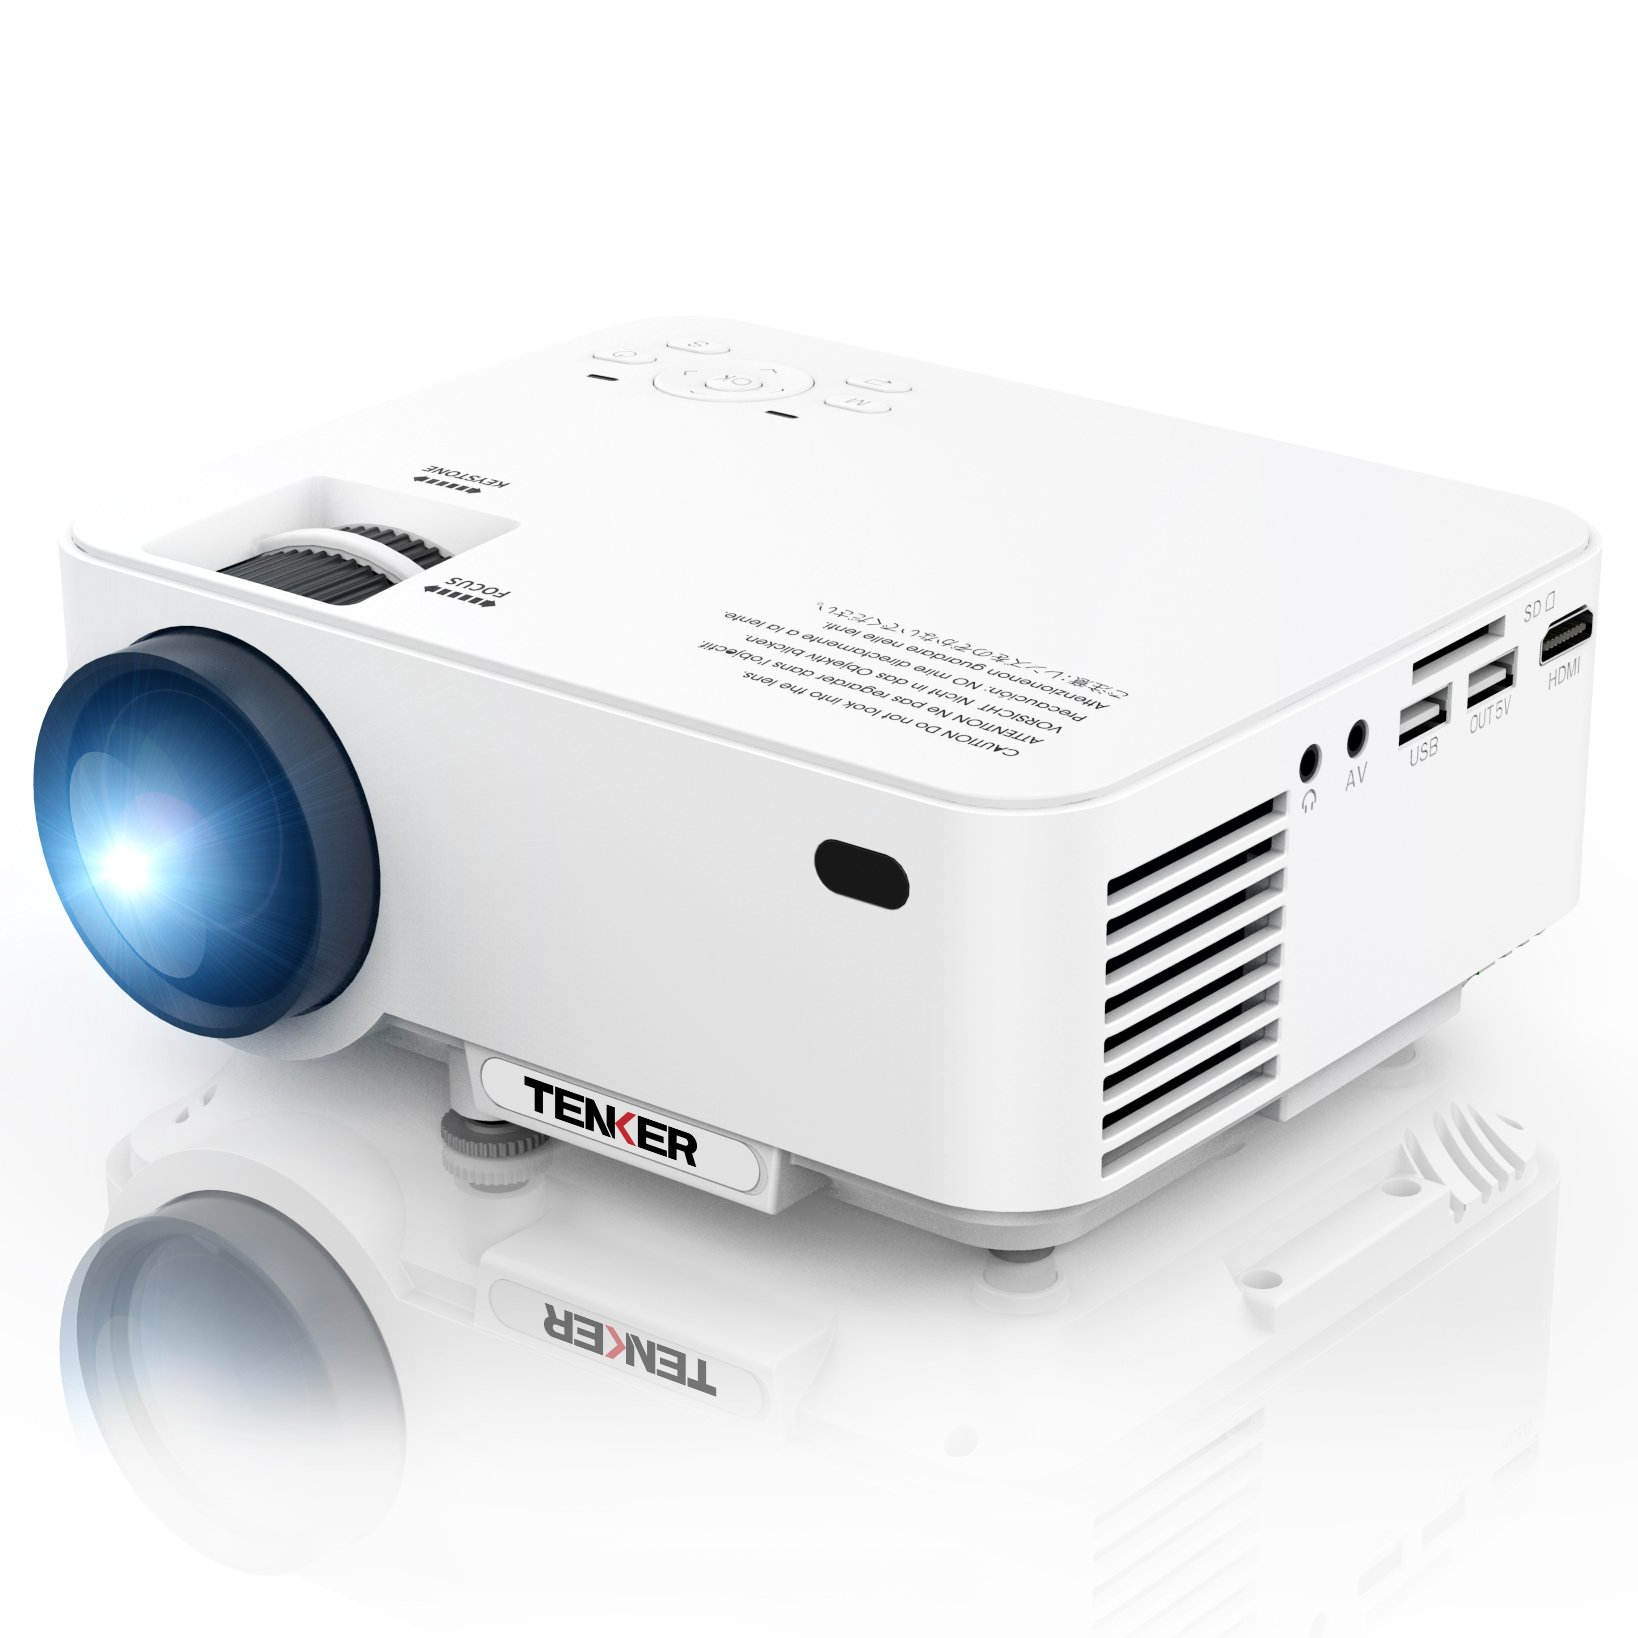 TENKER Upgrade +10% Lumens 4.0'' LCD Mini Projector, Portable Home Theater Projector with 170'' Display, Supports 1080P, HDMI, USB, SD Card, AV & VGA for TV, Laptops, Games and Smartphones